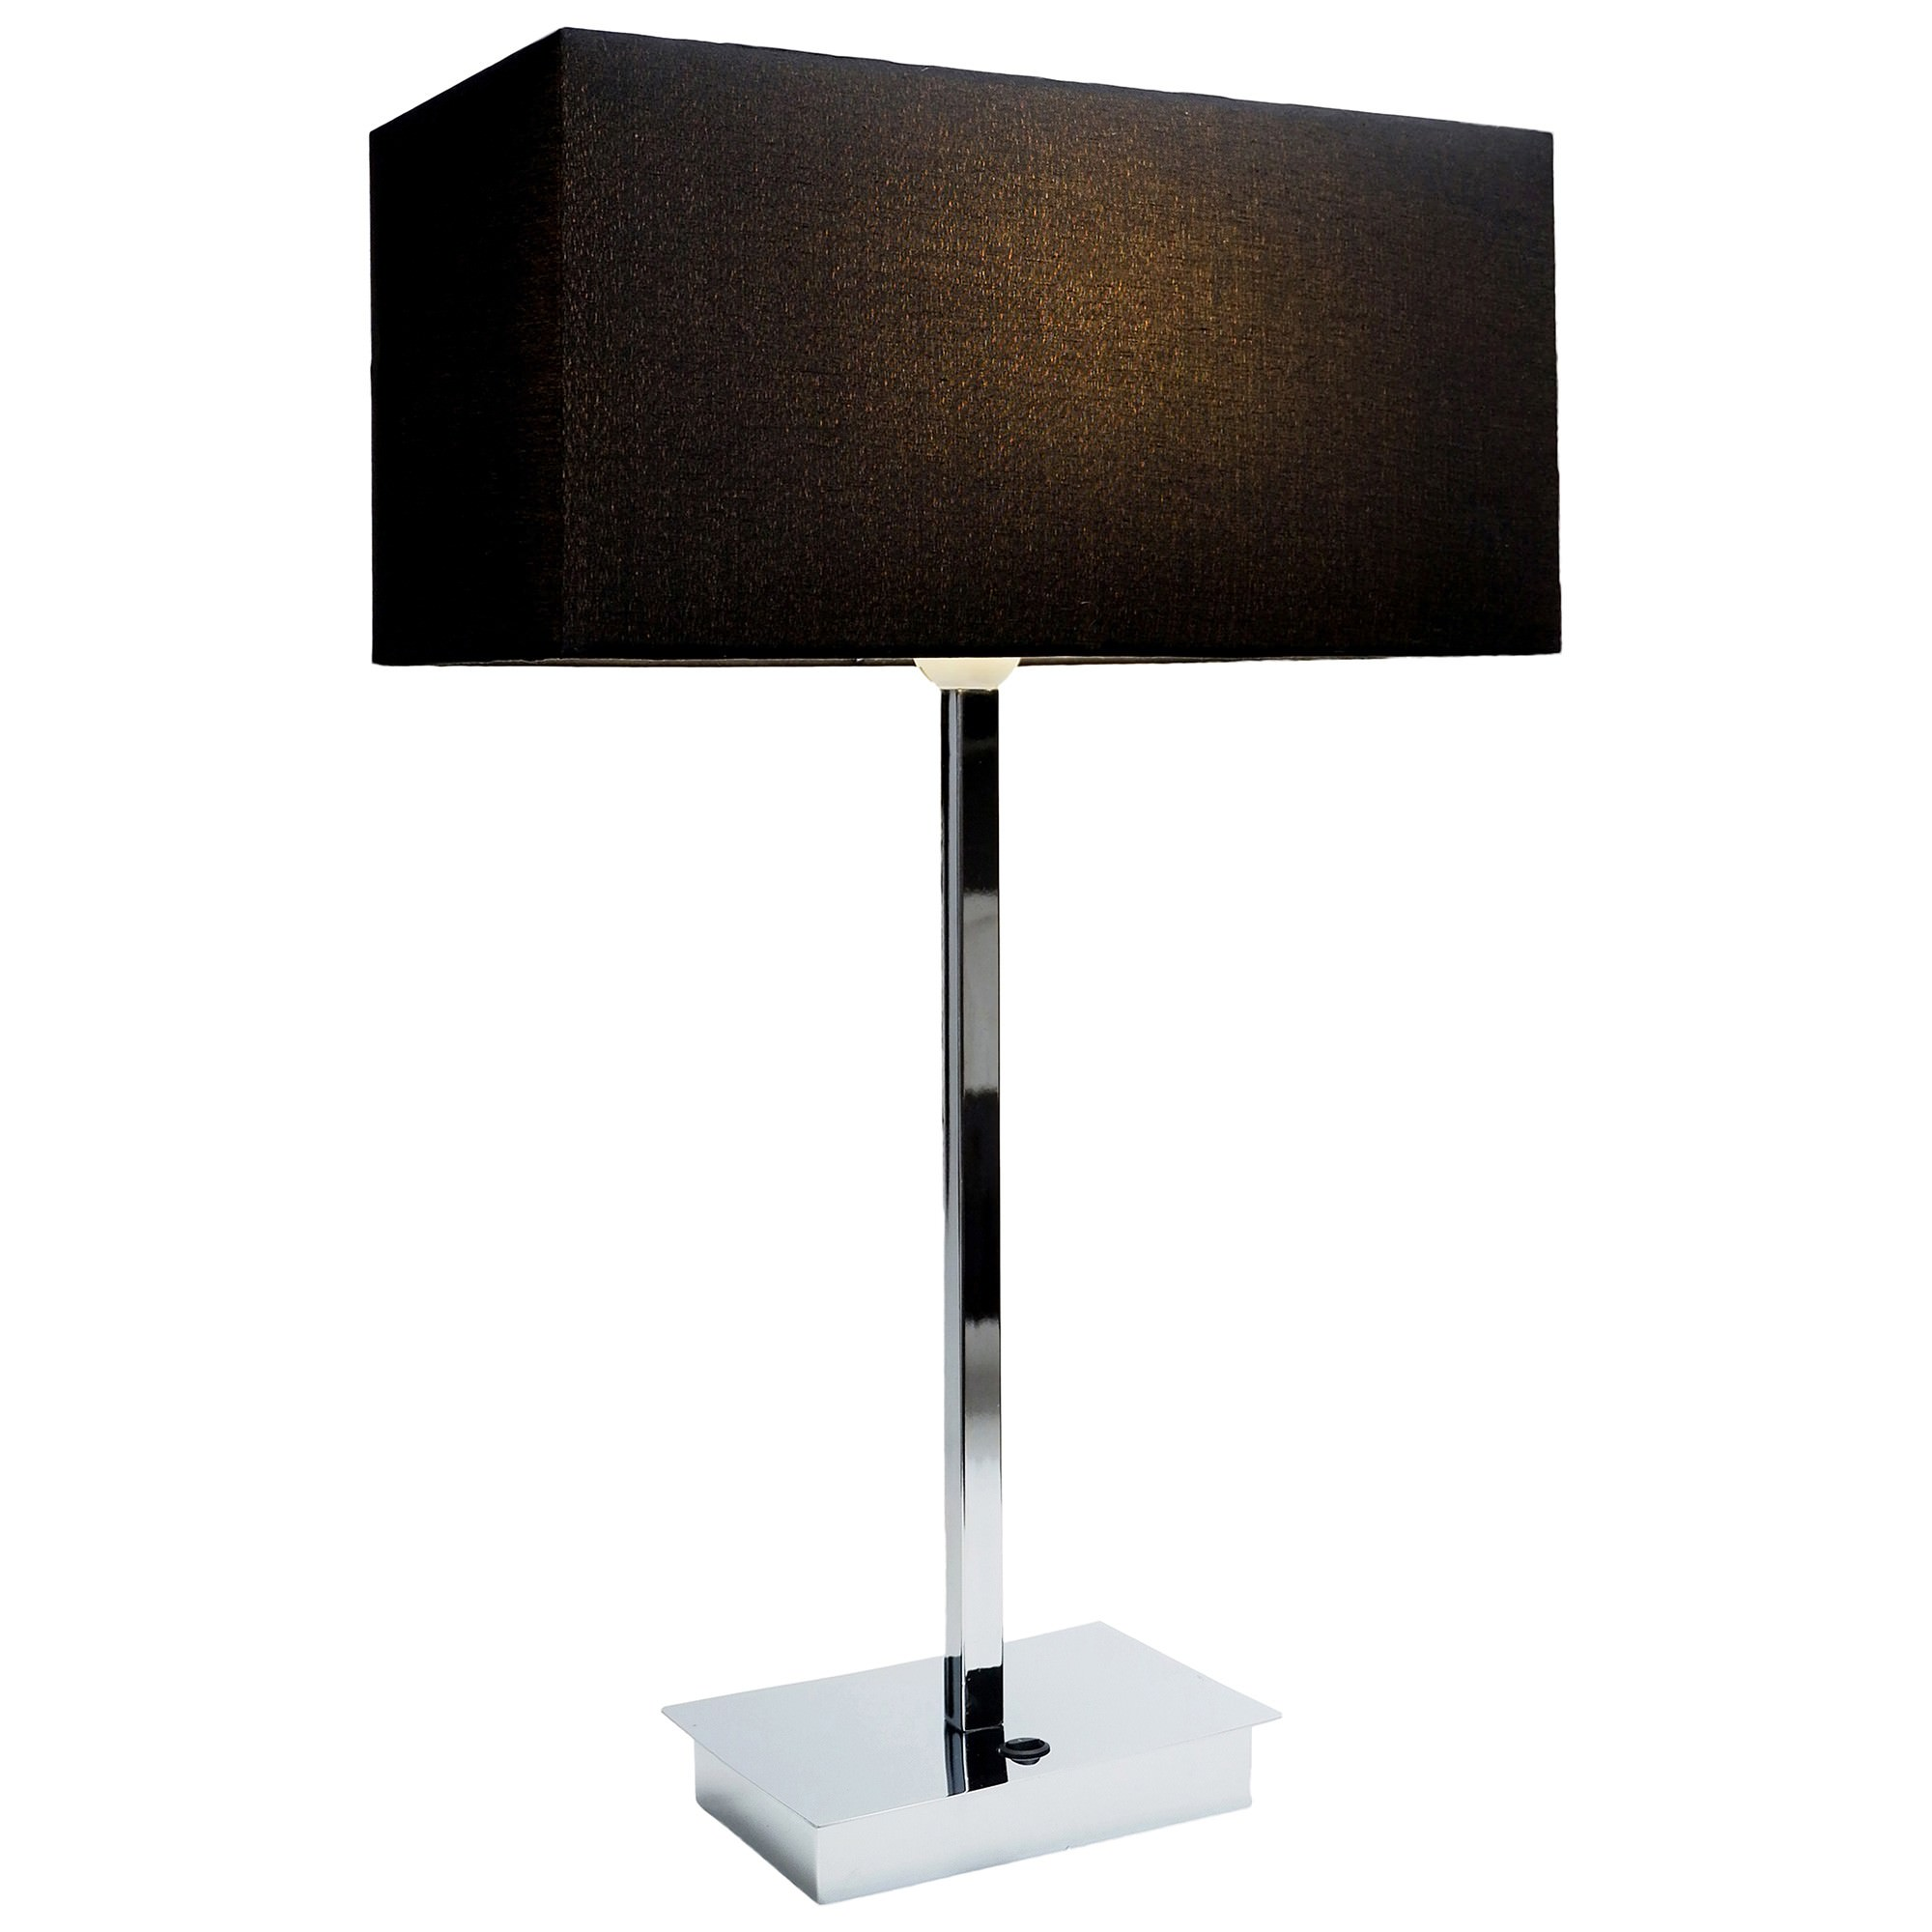 Ampara Metal Base Table Lamp with USB Port, Chrome / Black